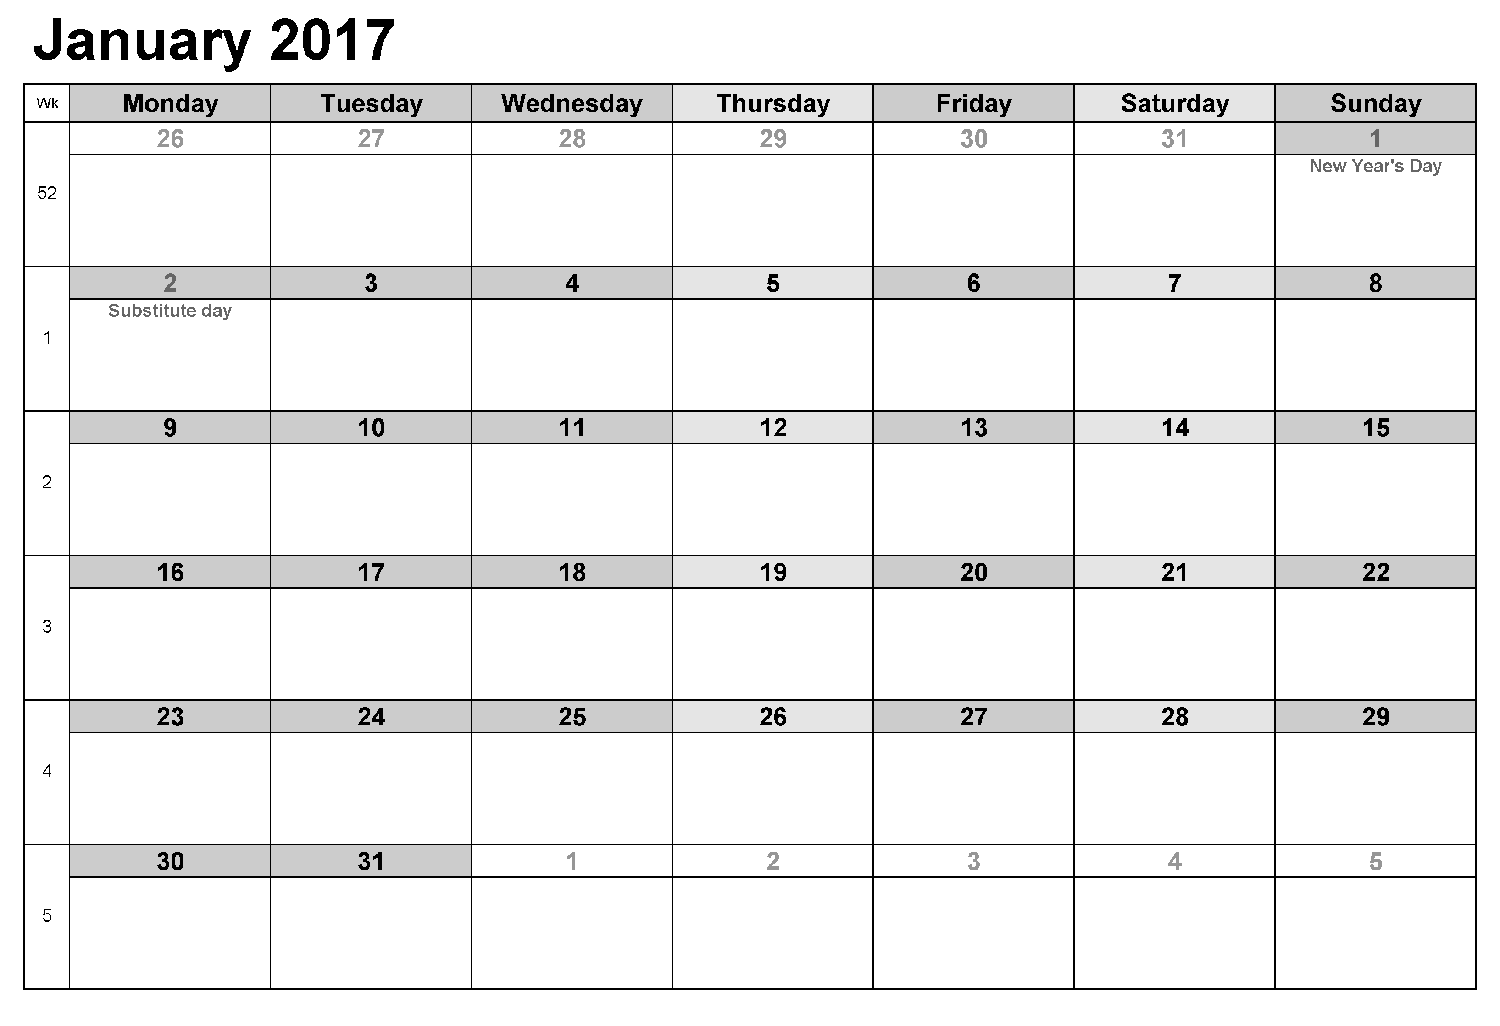 Download January 2017 calendar printable free with holidays list